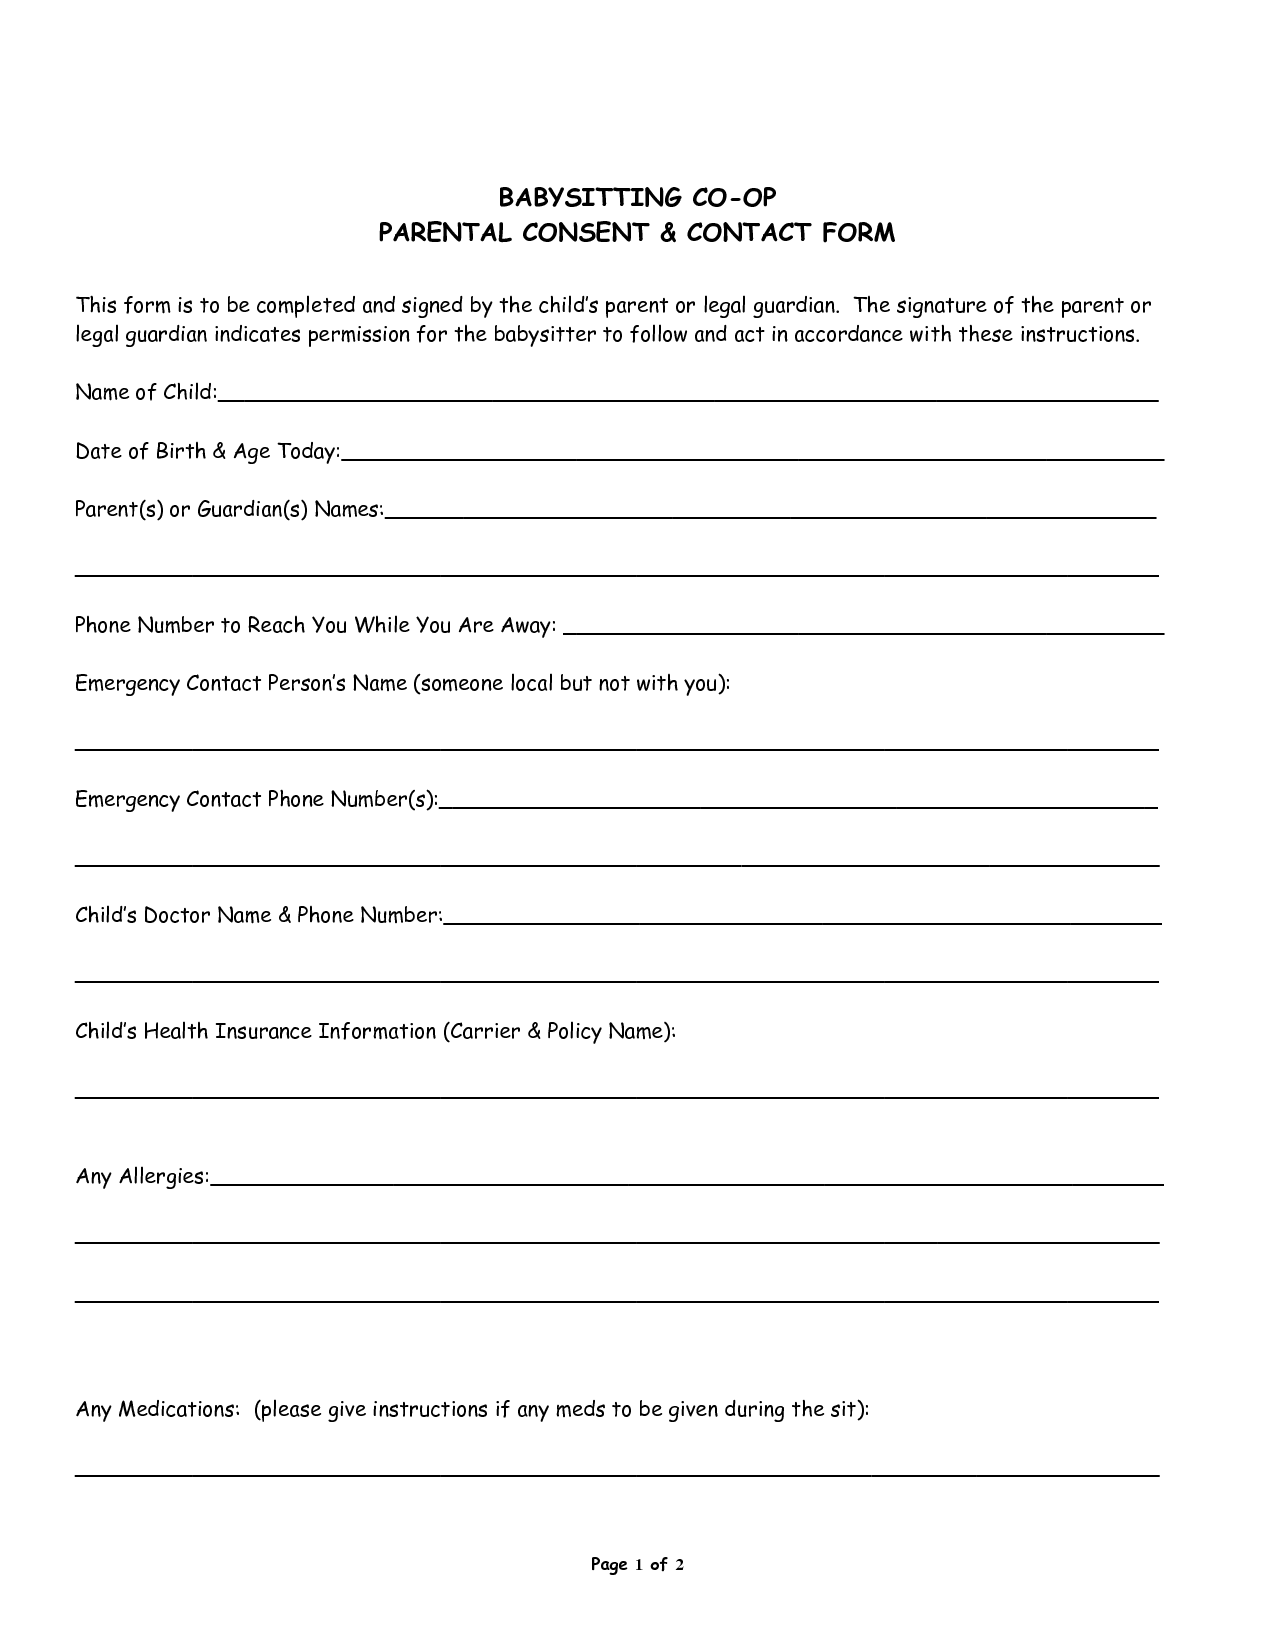 Babysitter Medical Consent Form Template